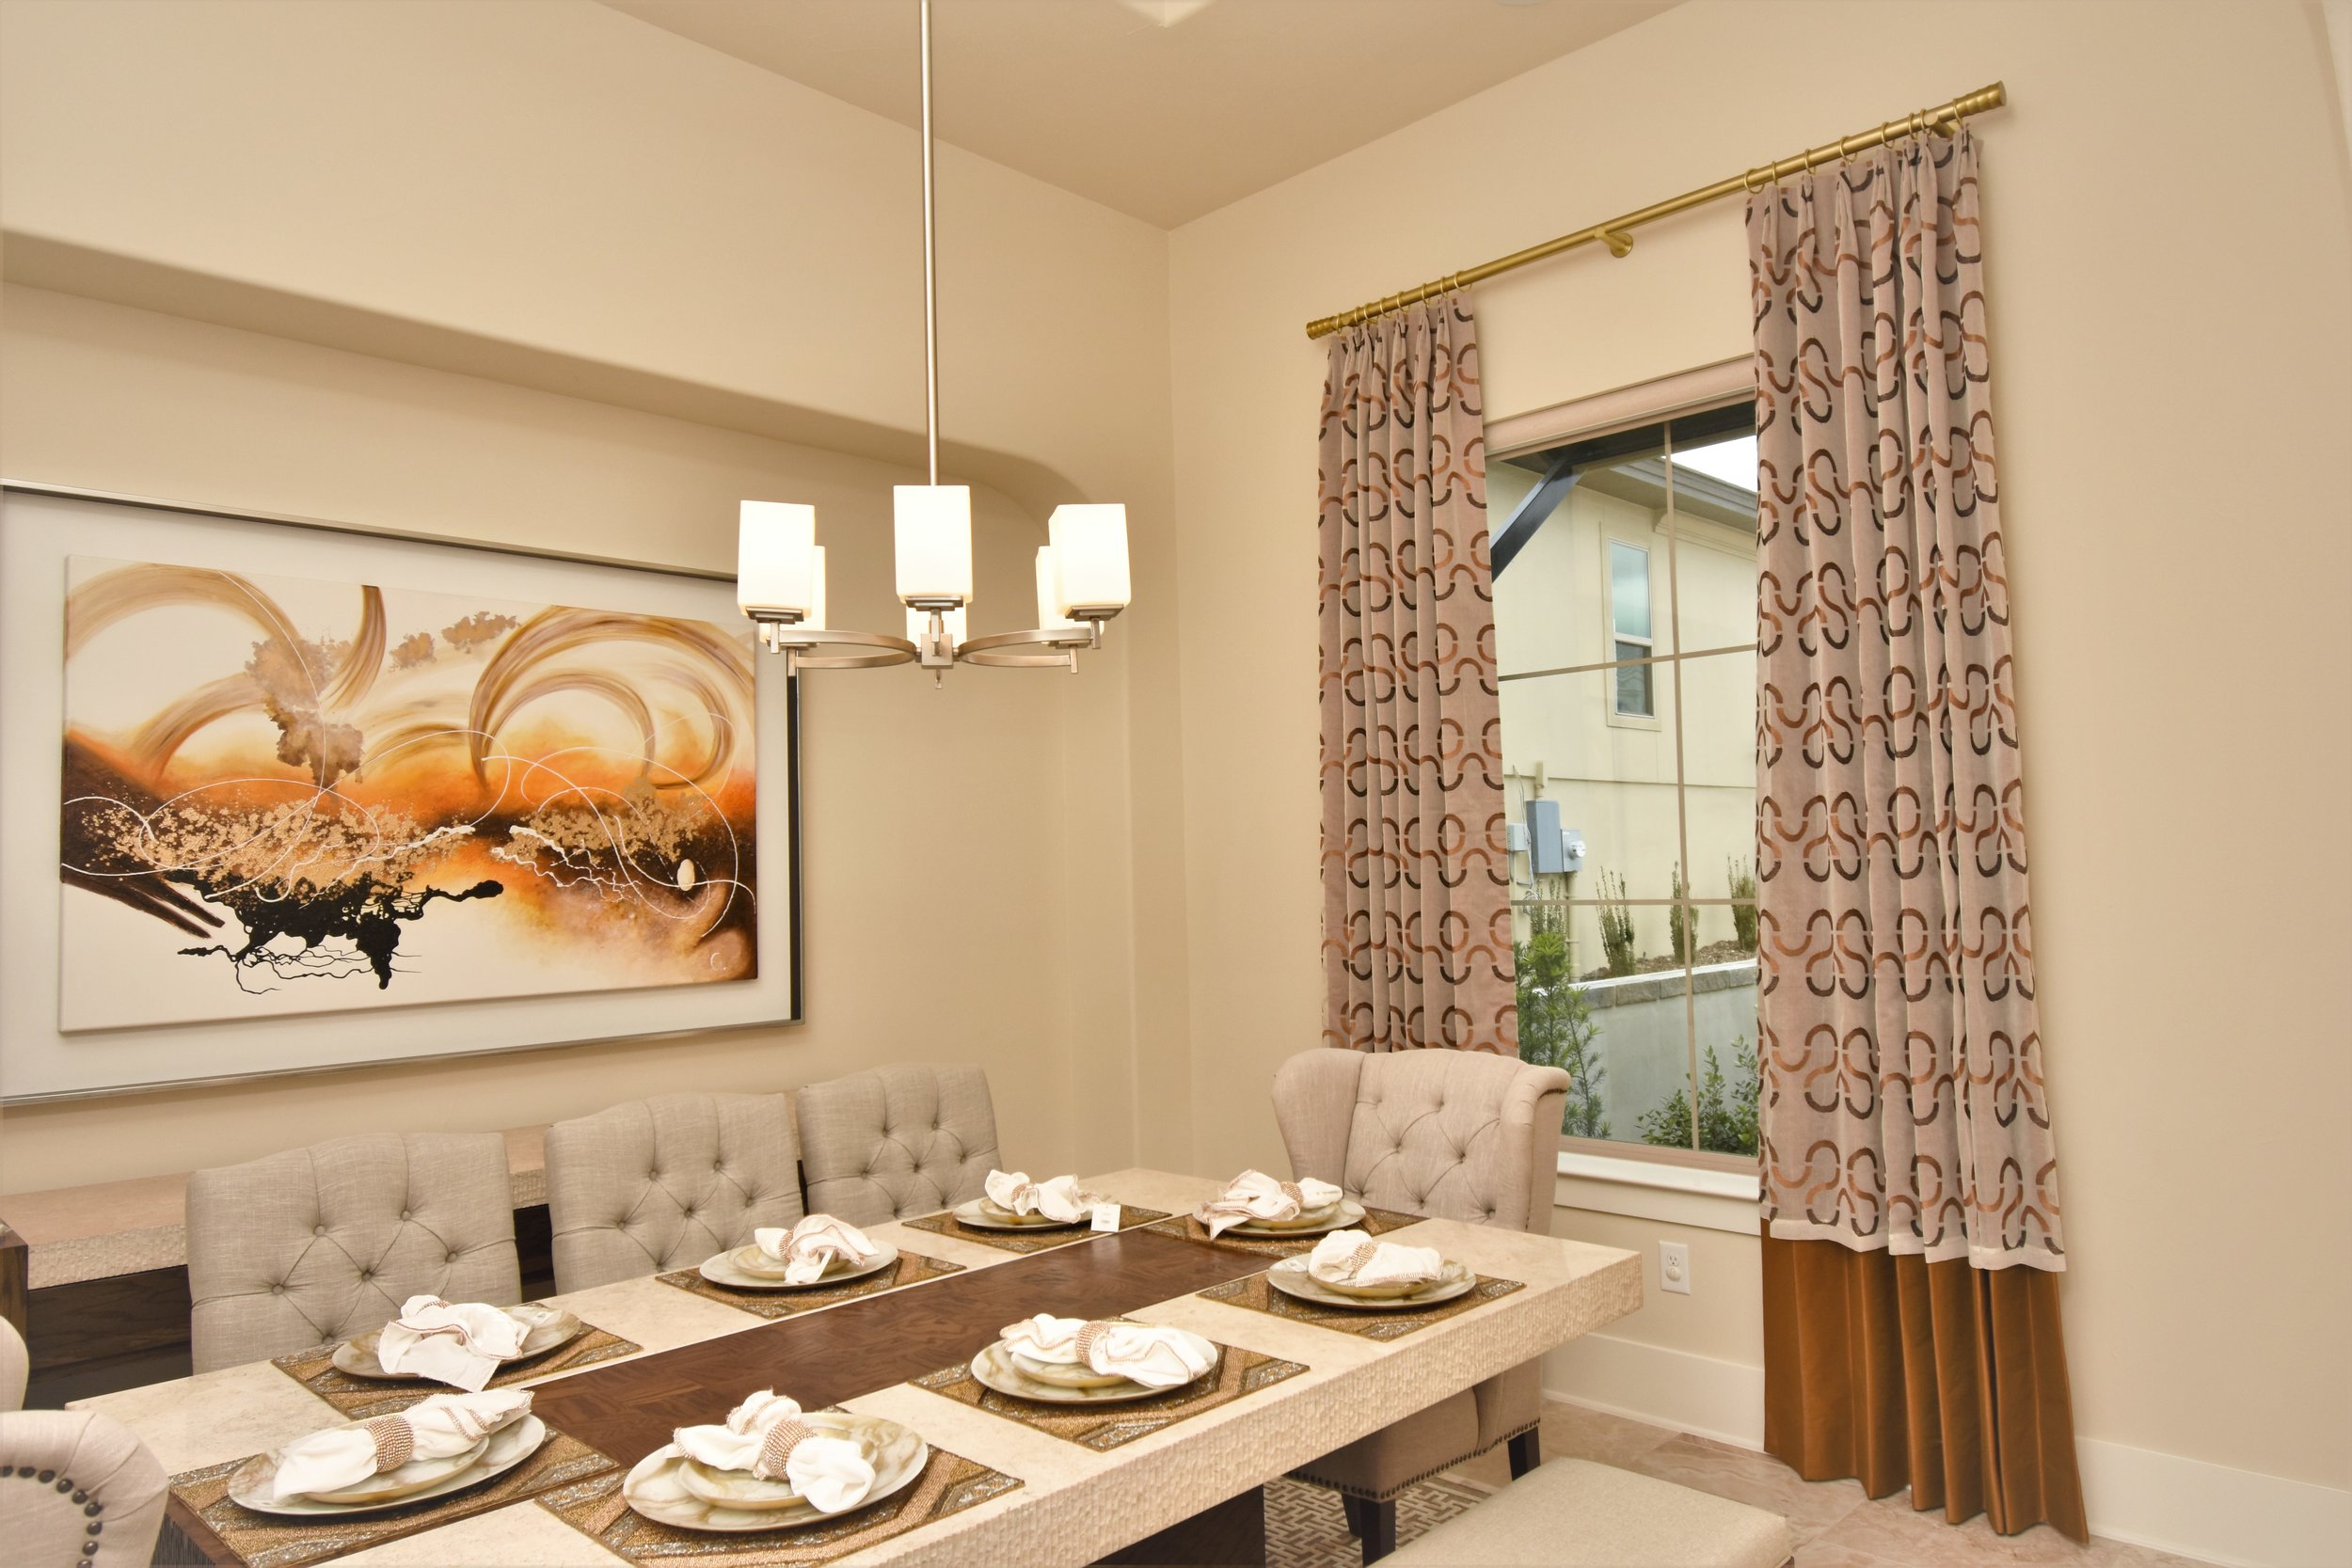 Custom Design Window Treatments by Alejandra Canales Ac Design Studio Custom Drapes and Shades Motorized Window coverings in McAllen Texas (9).JPG